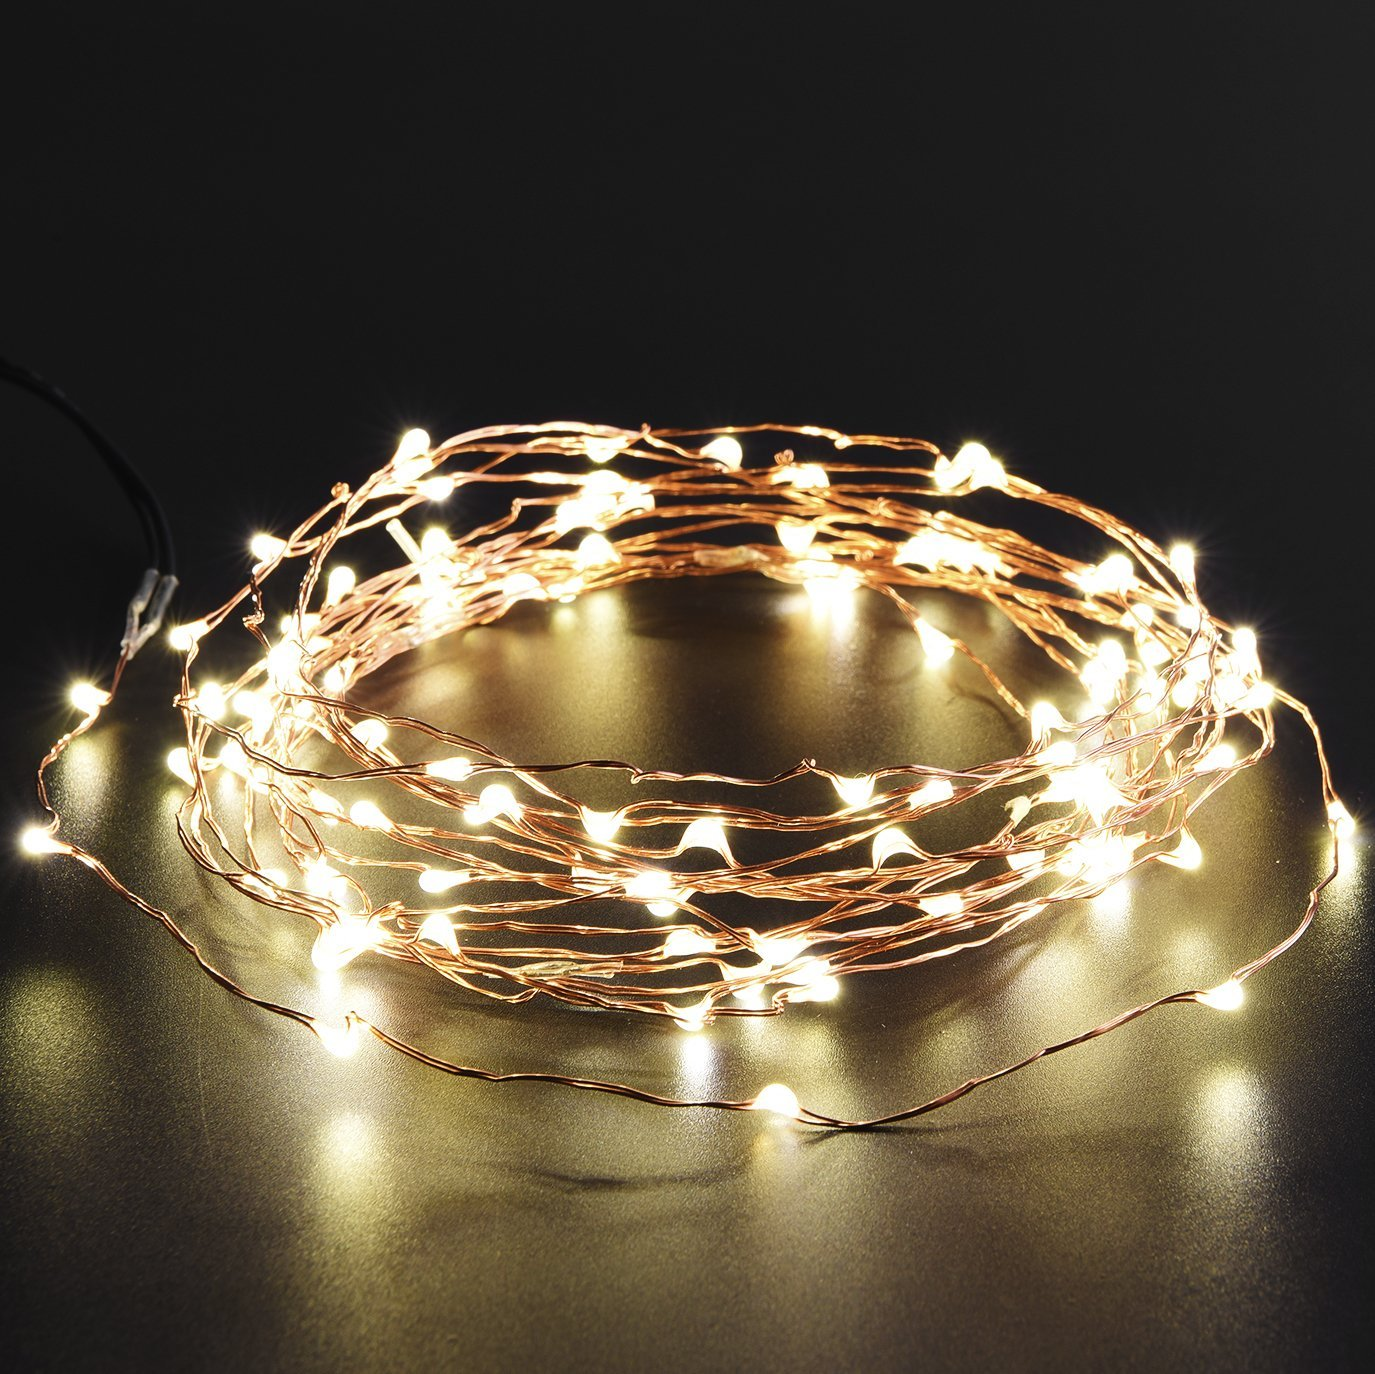 Led String Lights Reject Shop: Oak Leaf Solar Led Copper String Lights